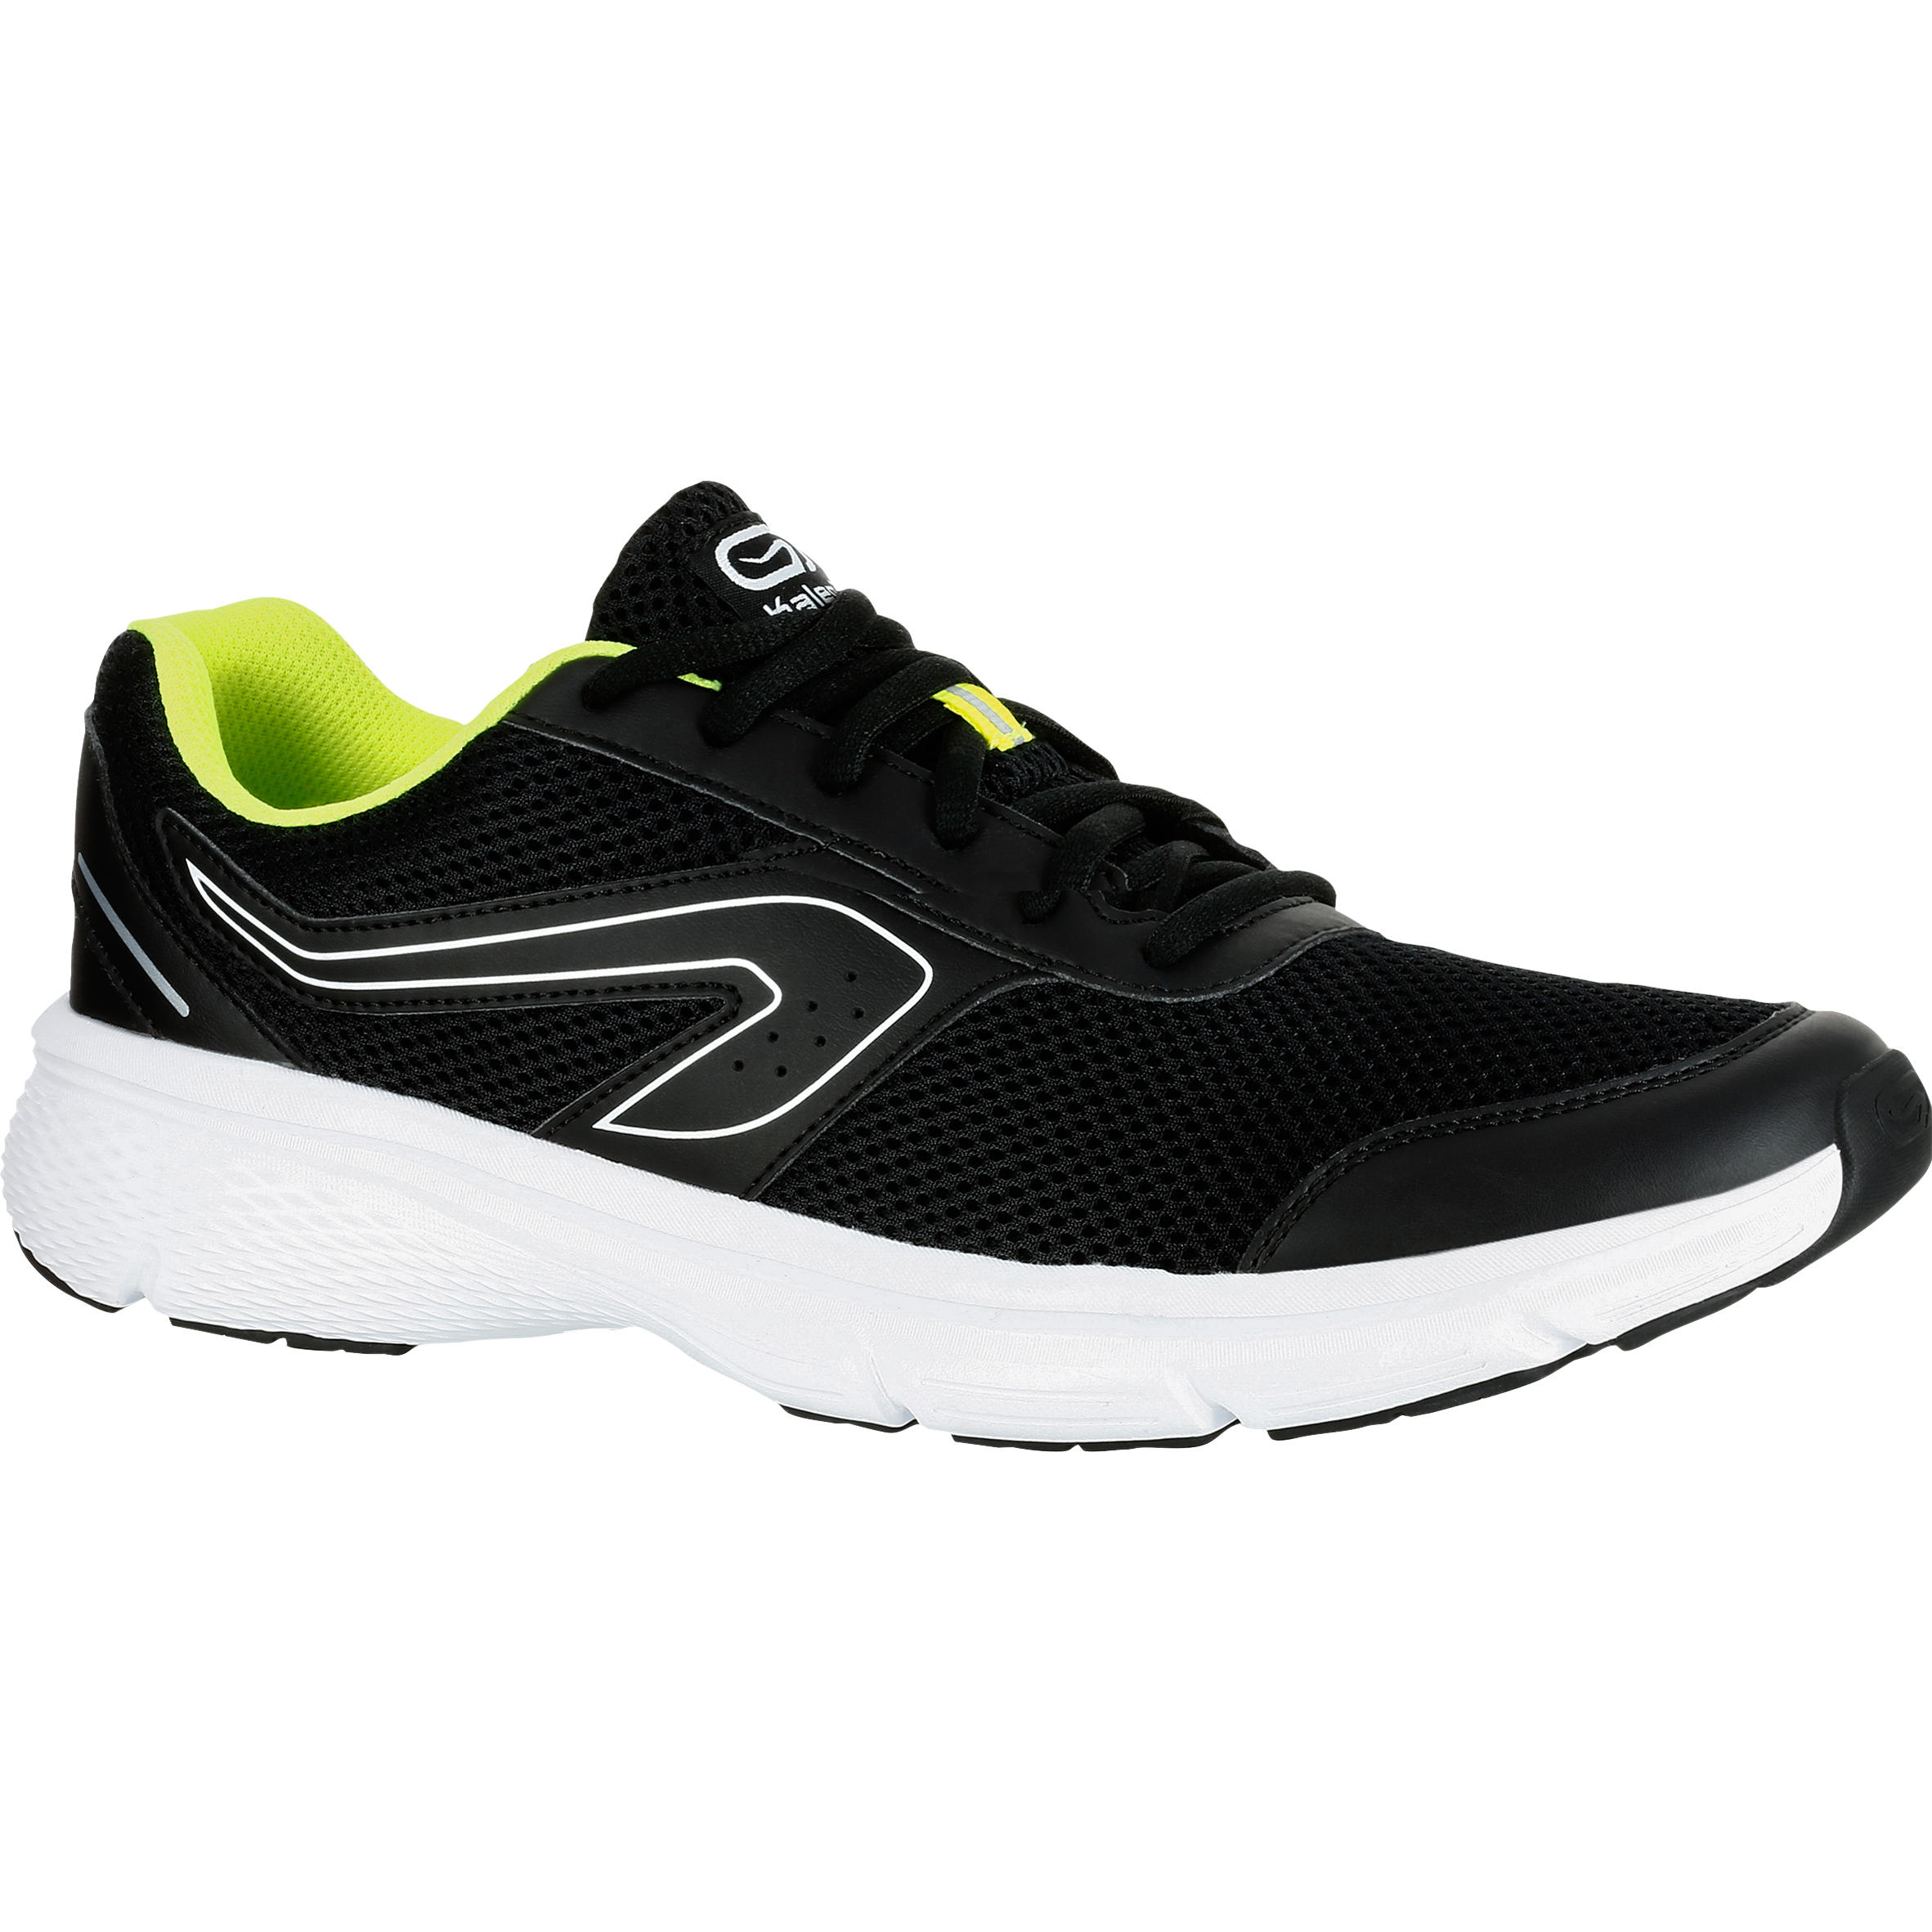 RUN CUSHION MEN'S RUNNING SHOES BLACK YELLOW